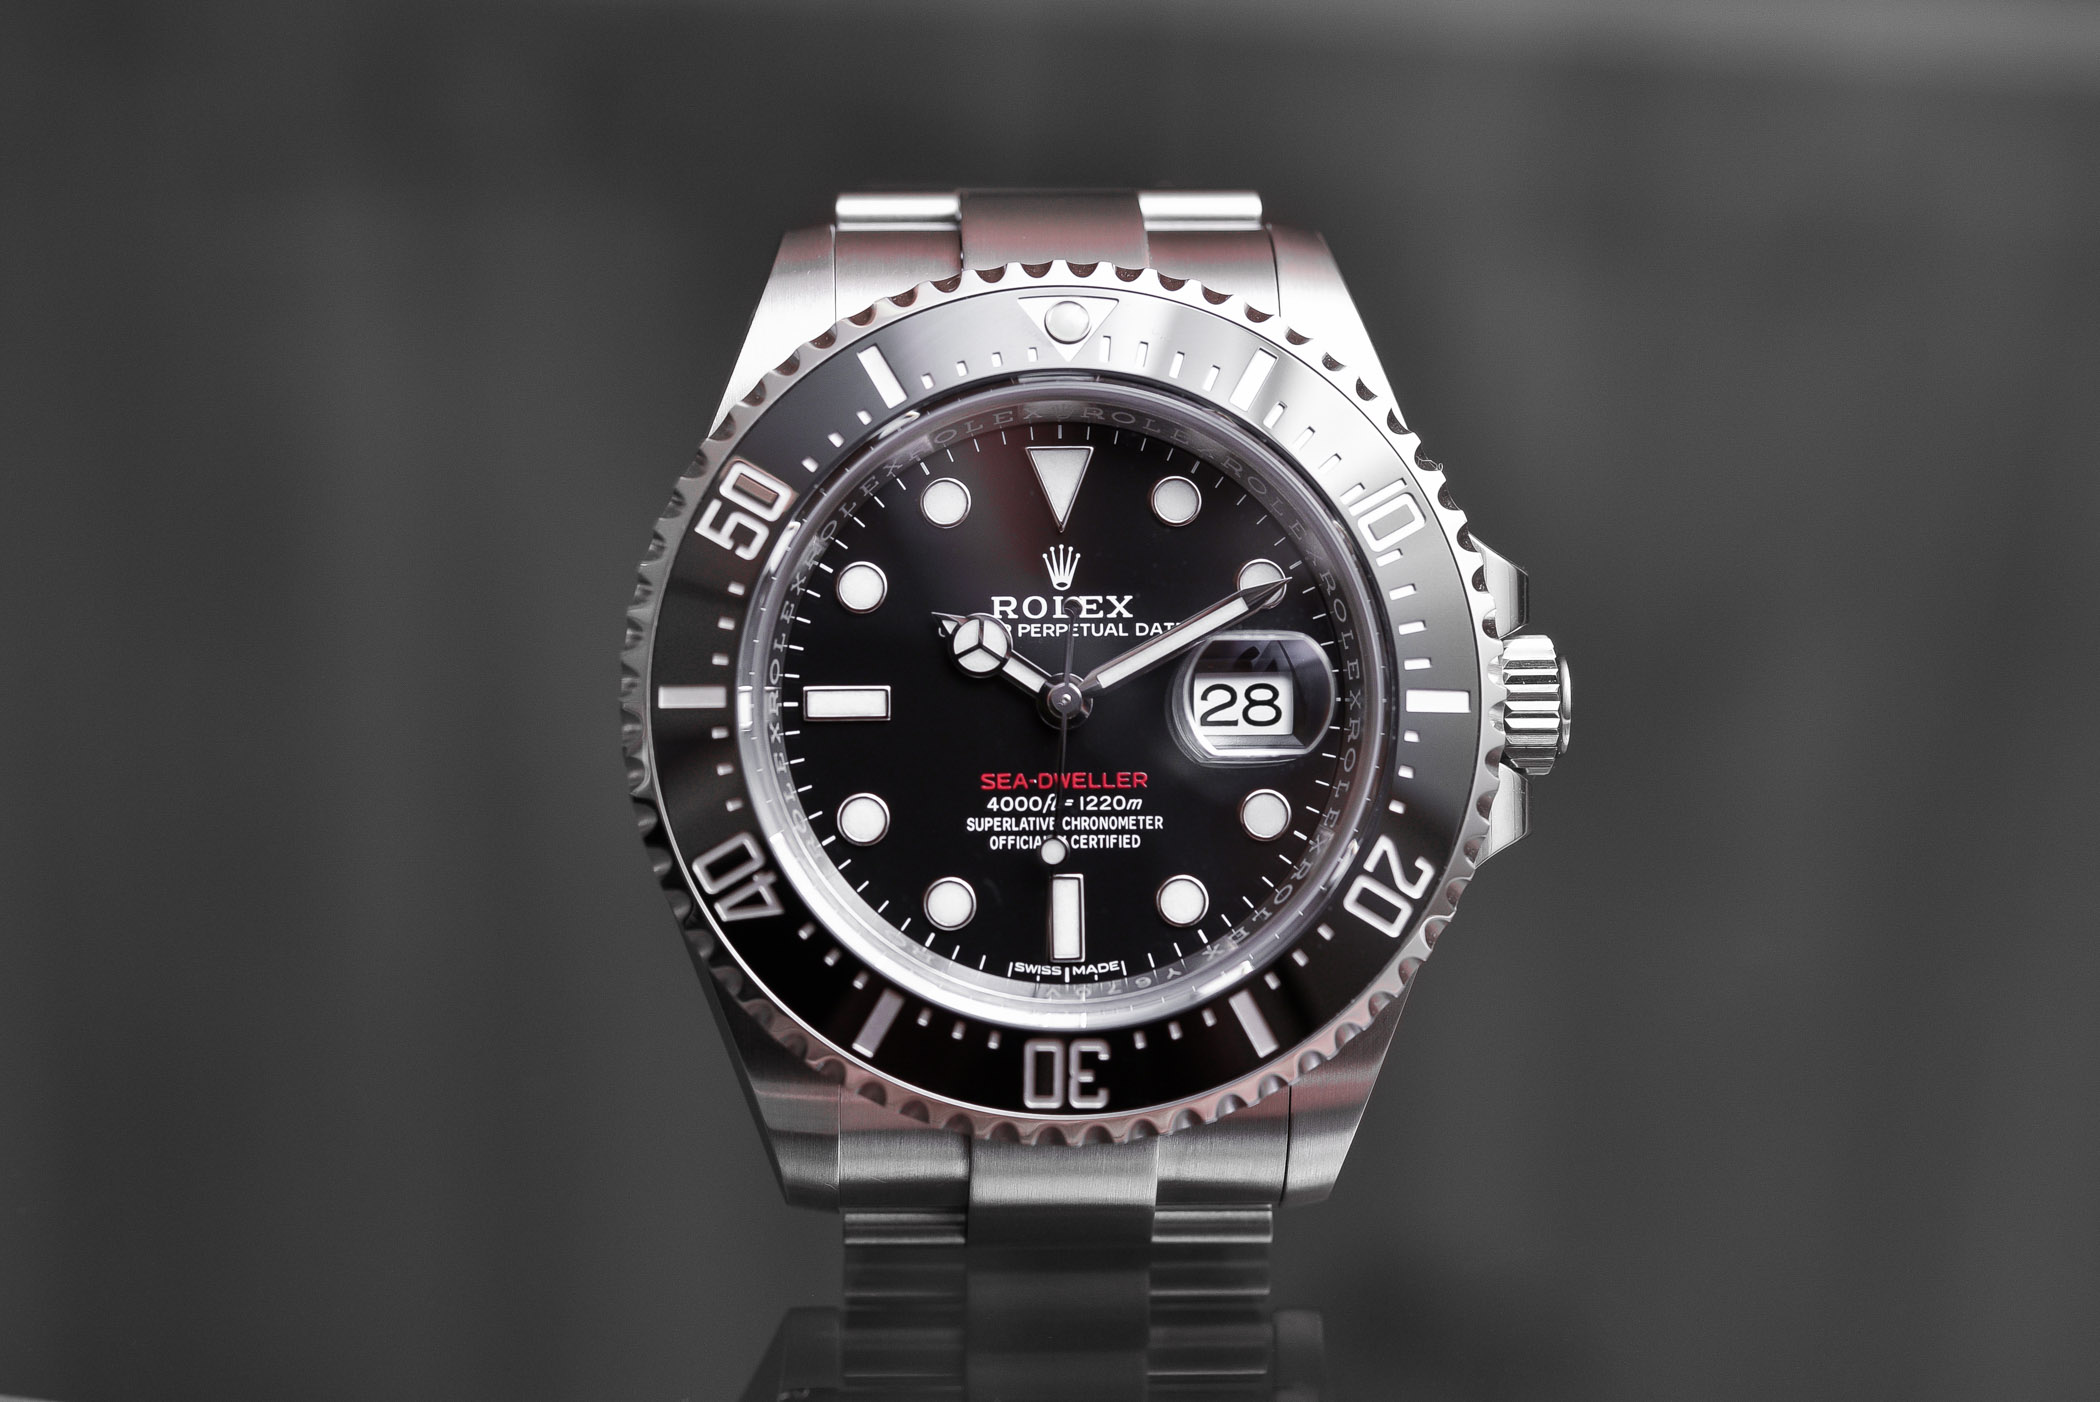 Rolex Sea Dweller 16600 Dimensions